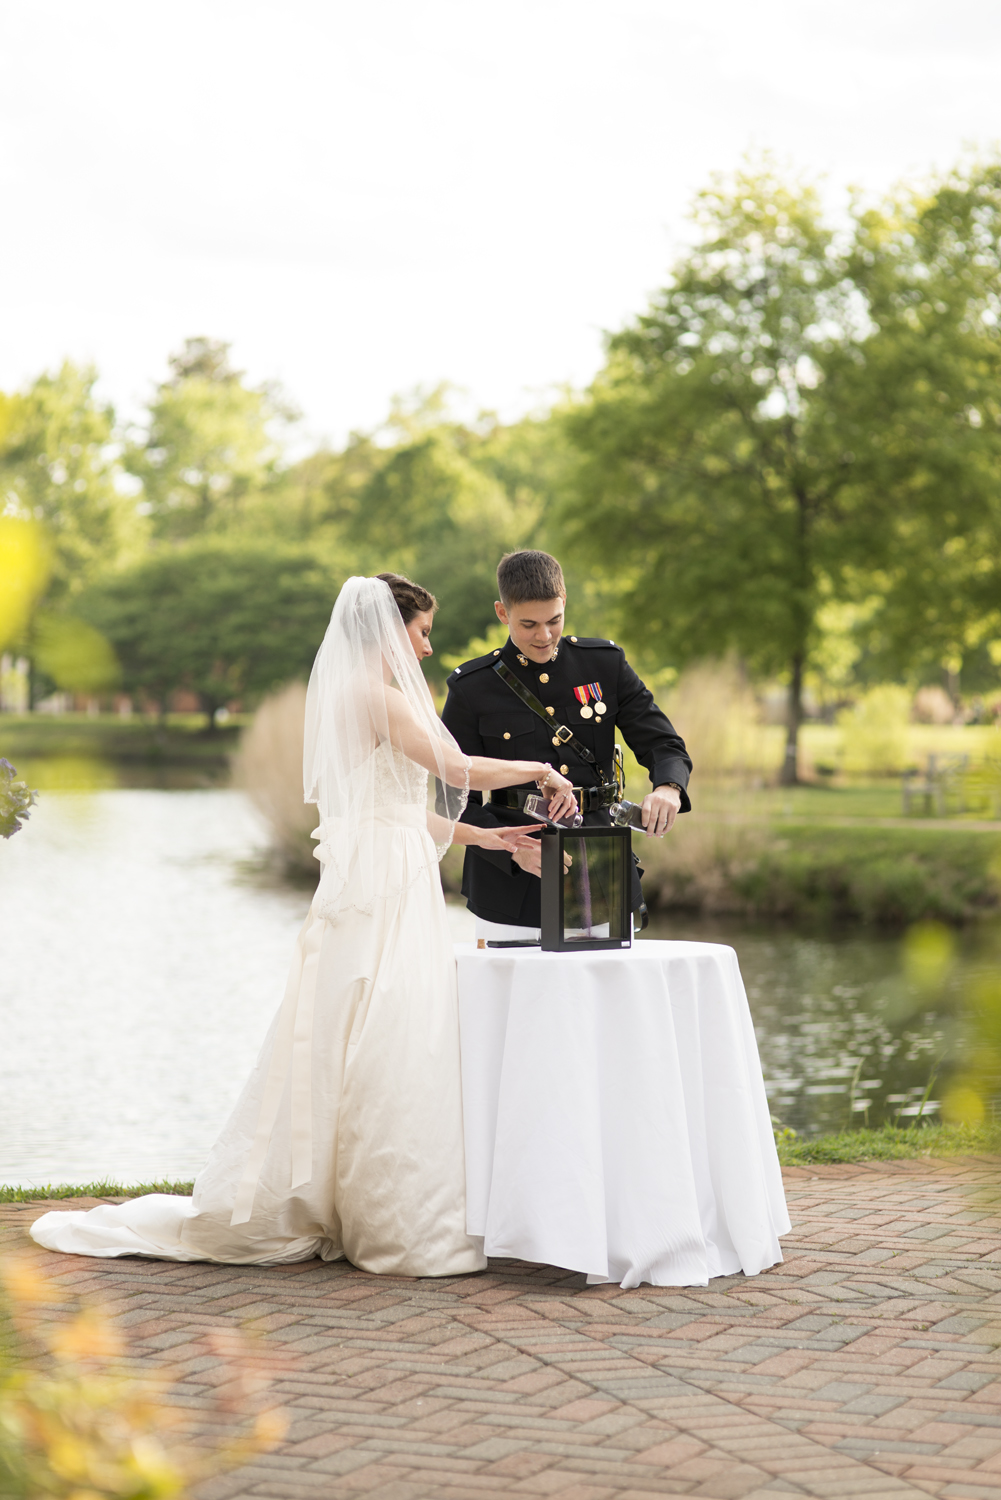 Bride and groom pouring unity sand at wedding |Maria Grace Photography